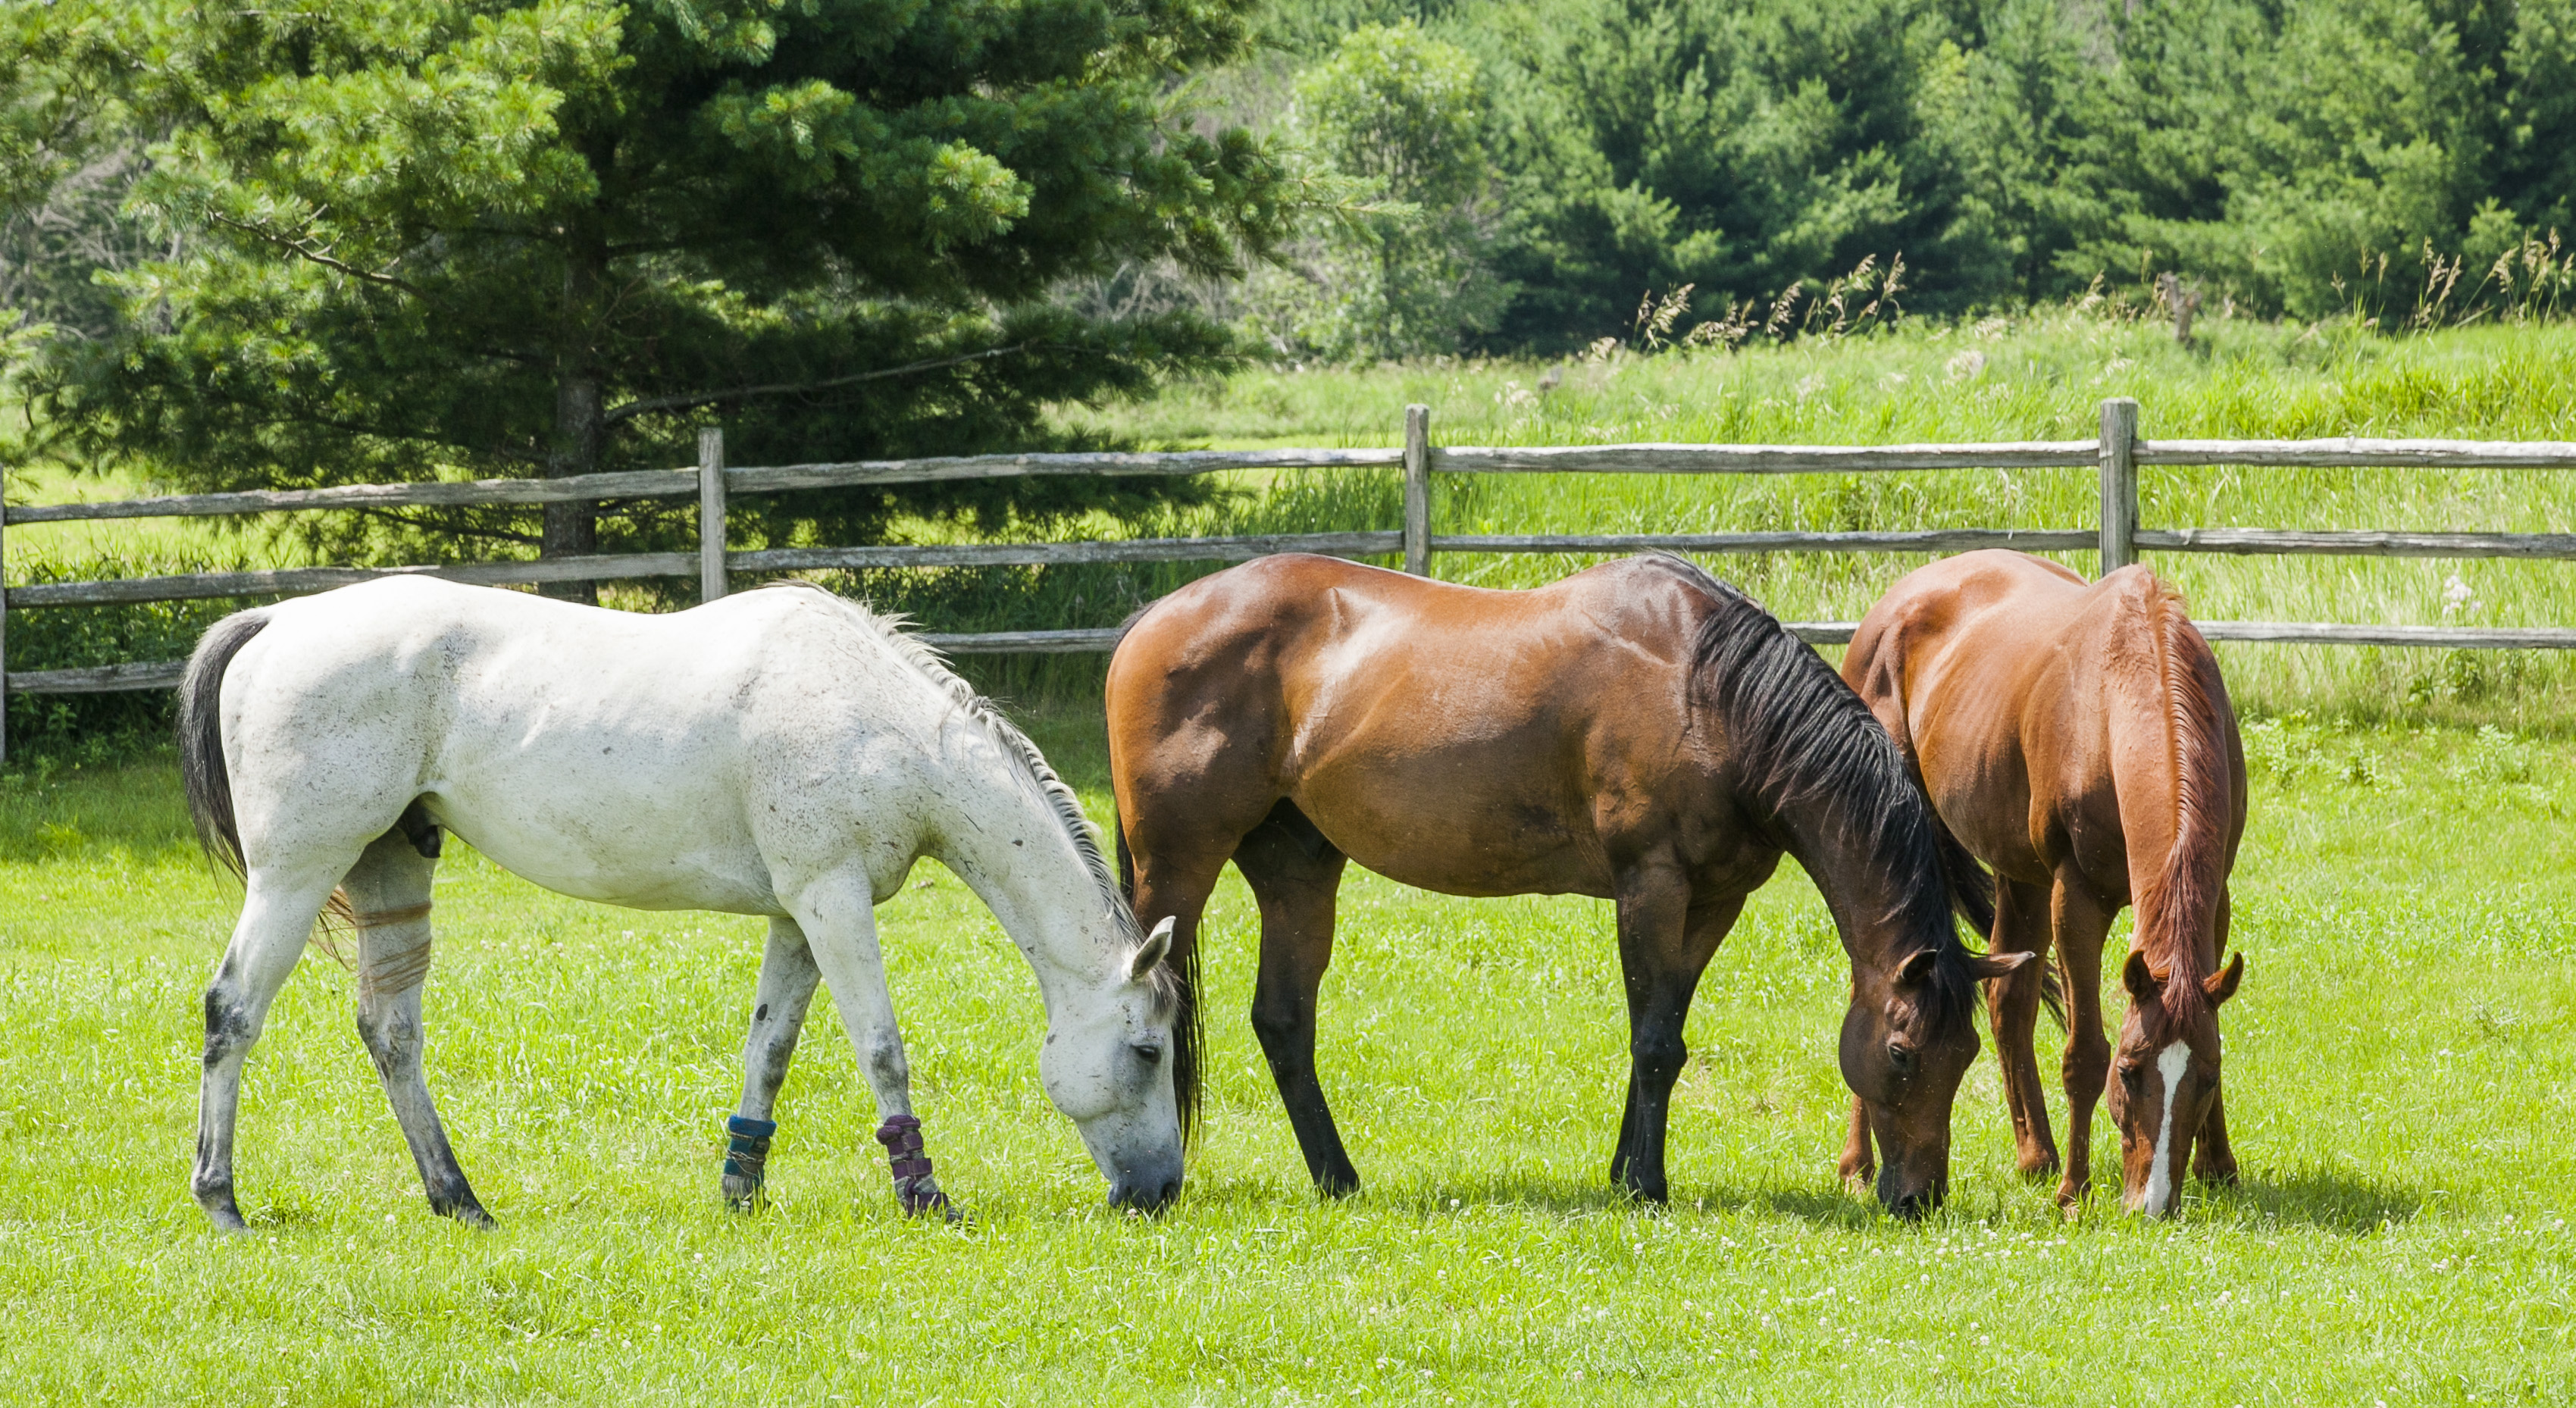 hree horses, a gray, a bay, and a chestnut grazing in a pasture